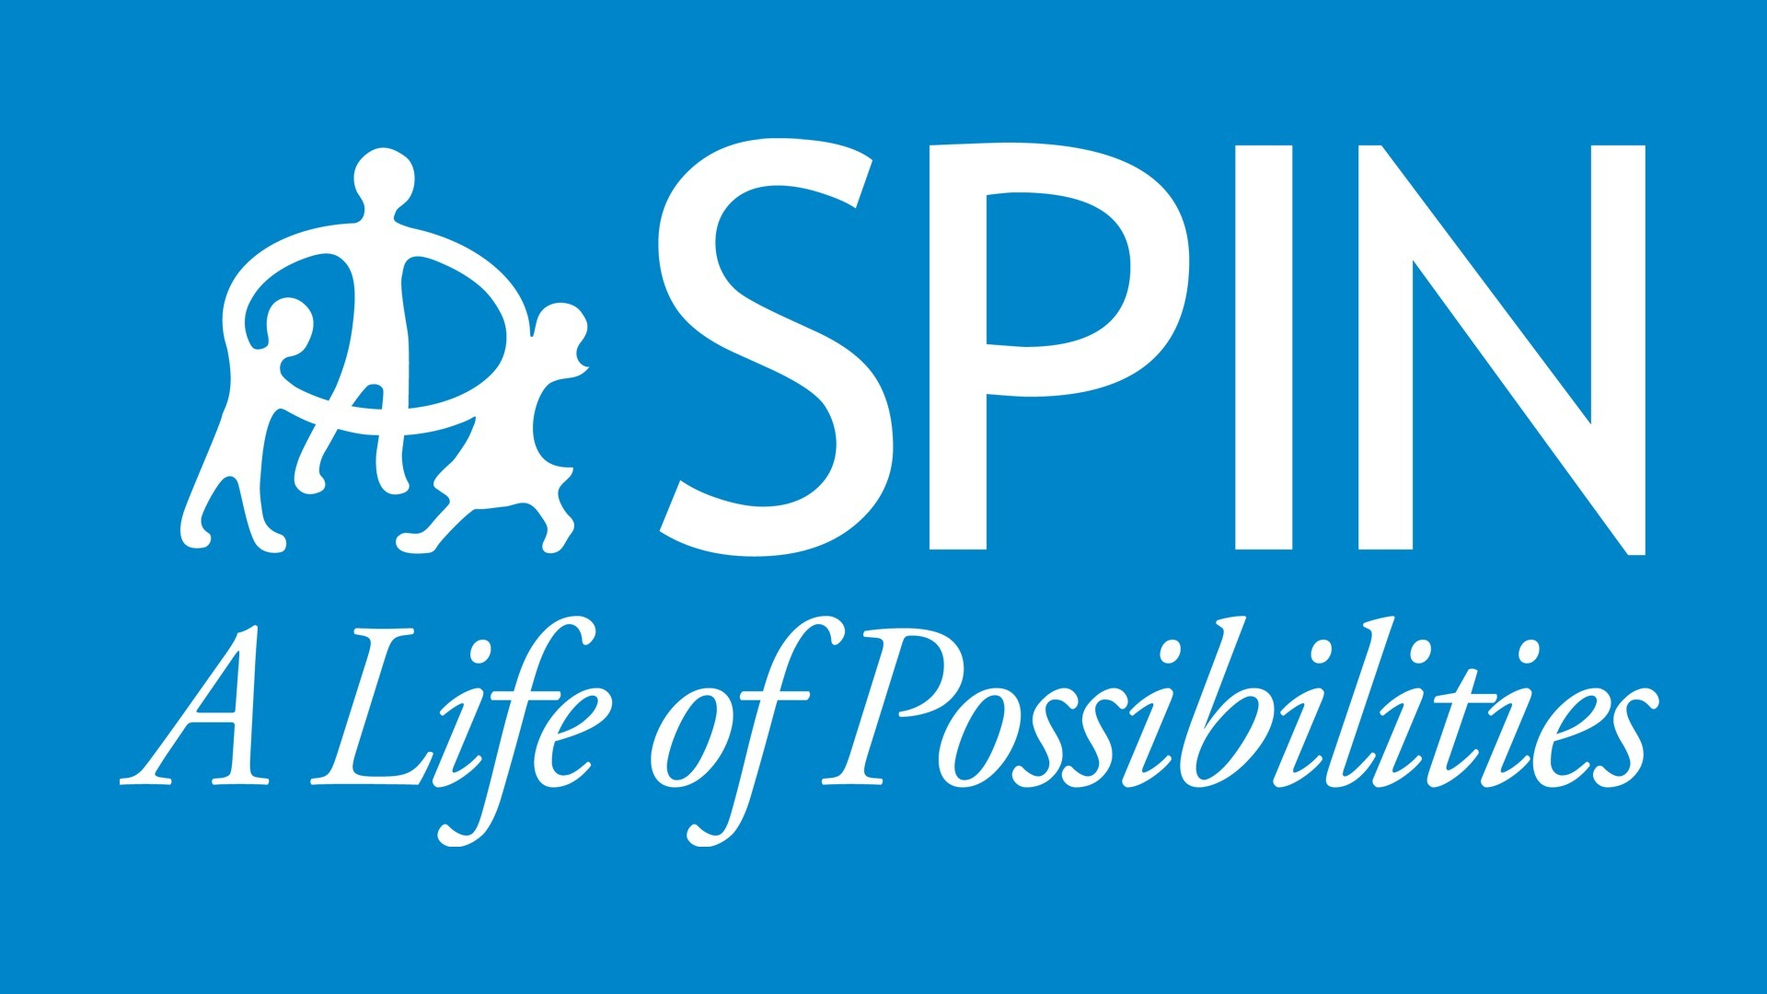 Support a Life of Possibilities image